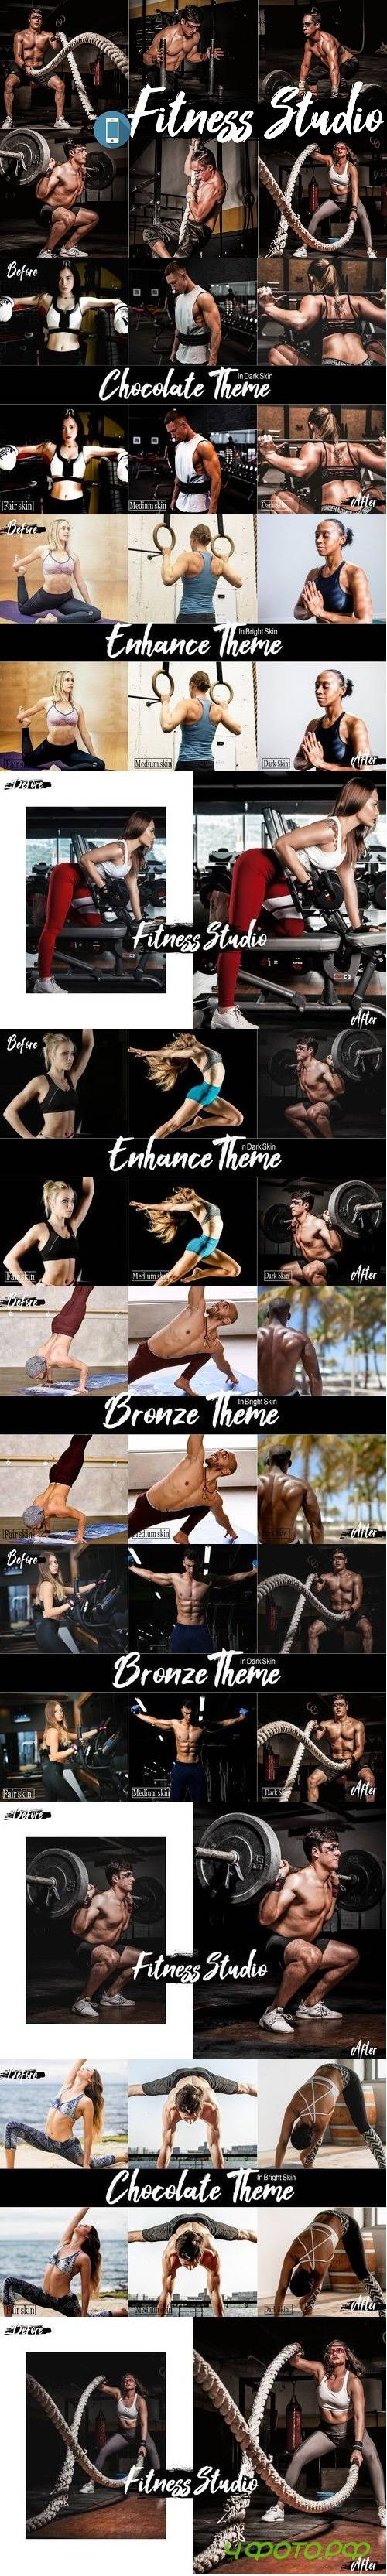 18 Fitness Studio Mobile Lightroom Presets - 417096